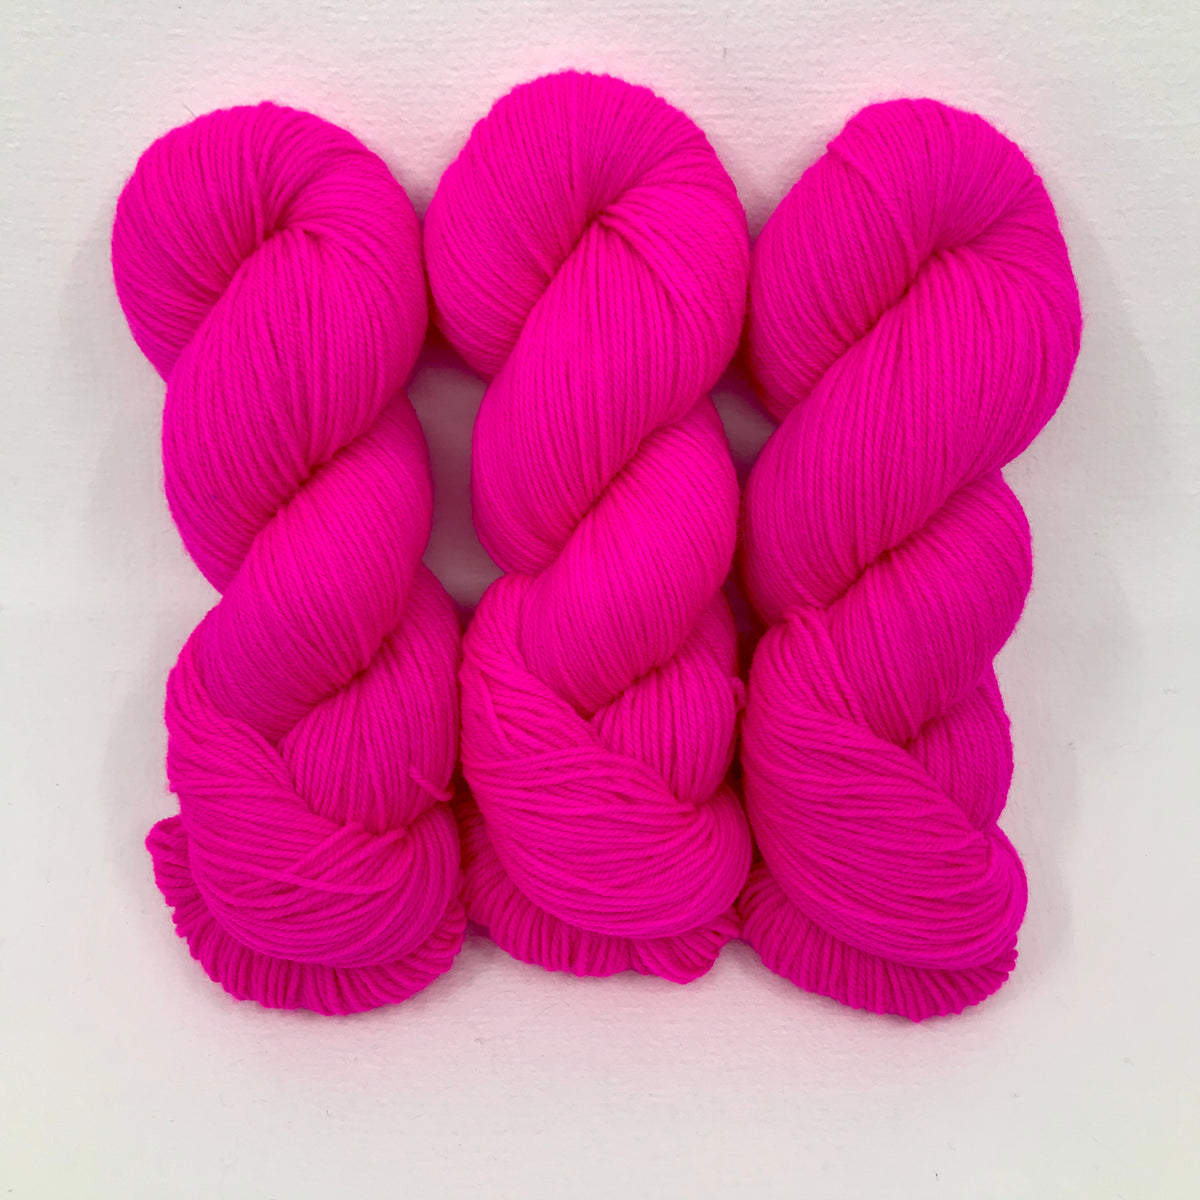 Pink Light Sabre - Merino DK / Light Worsted - Dyed Stock